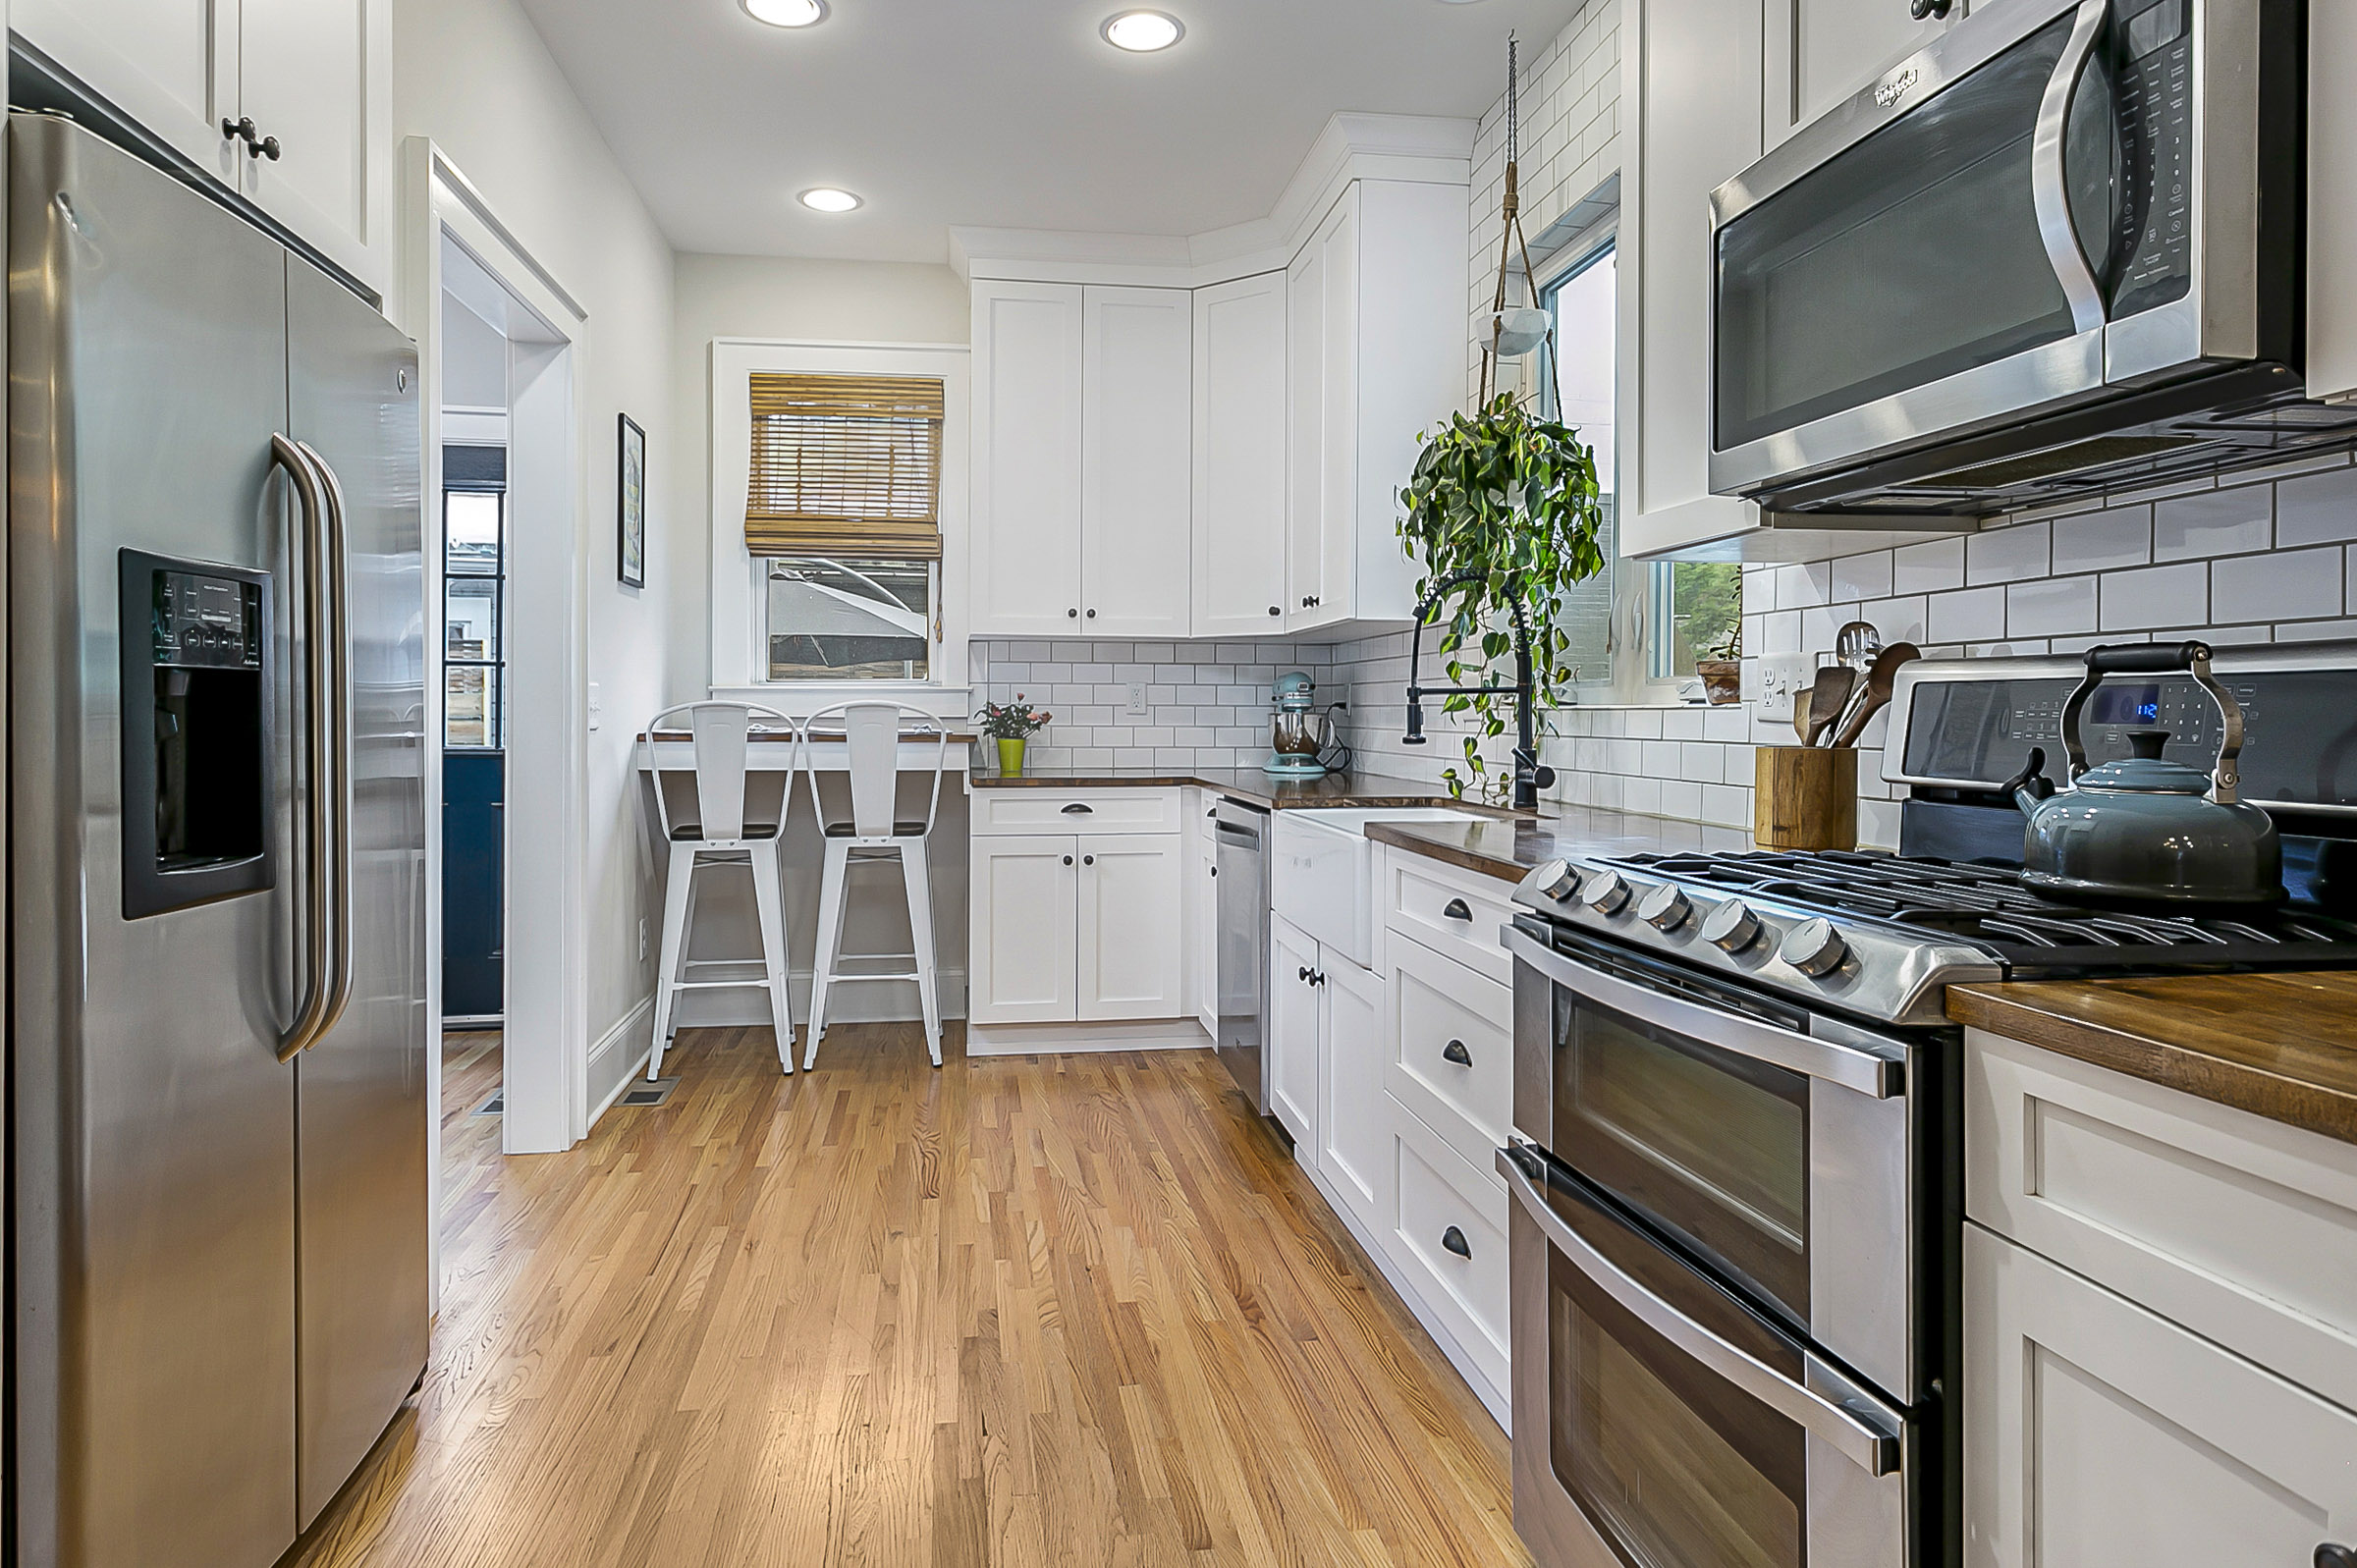 Gallery style kitchen with white cabinets and stainless steel appliances